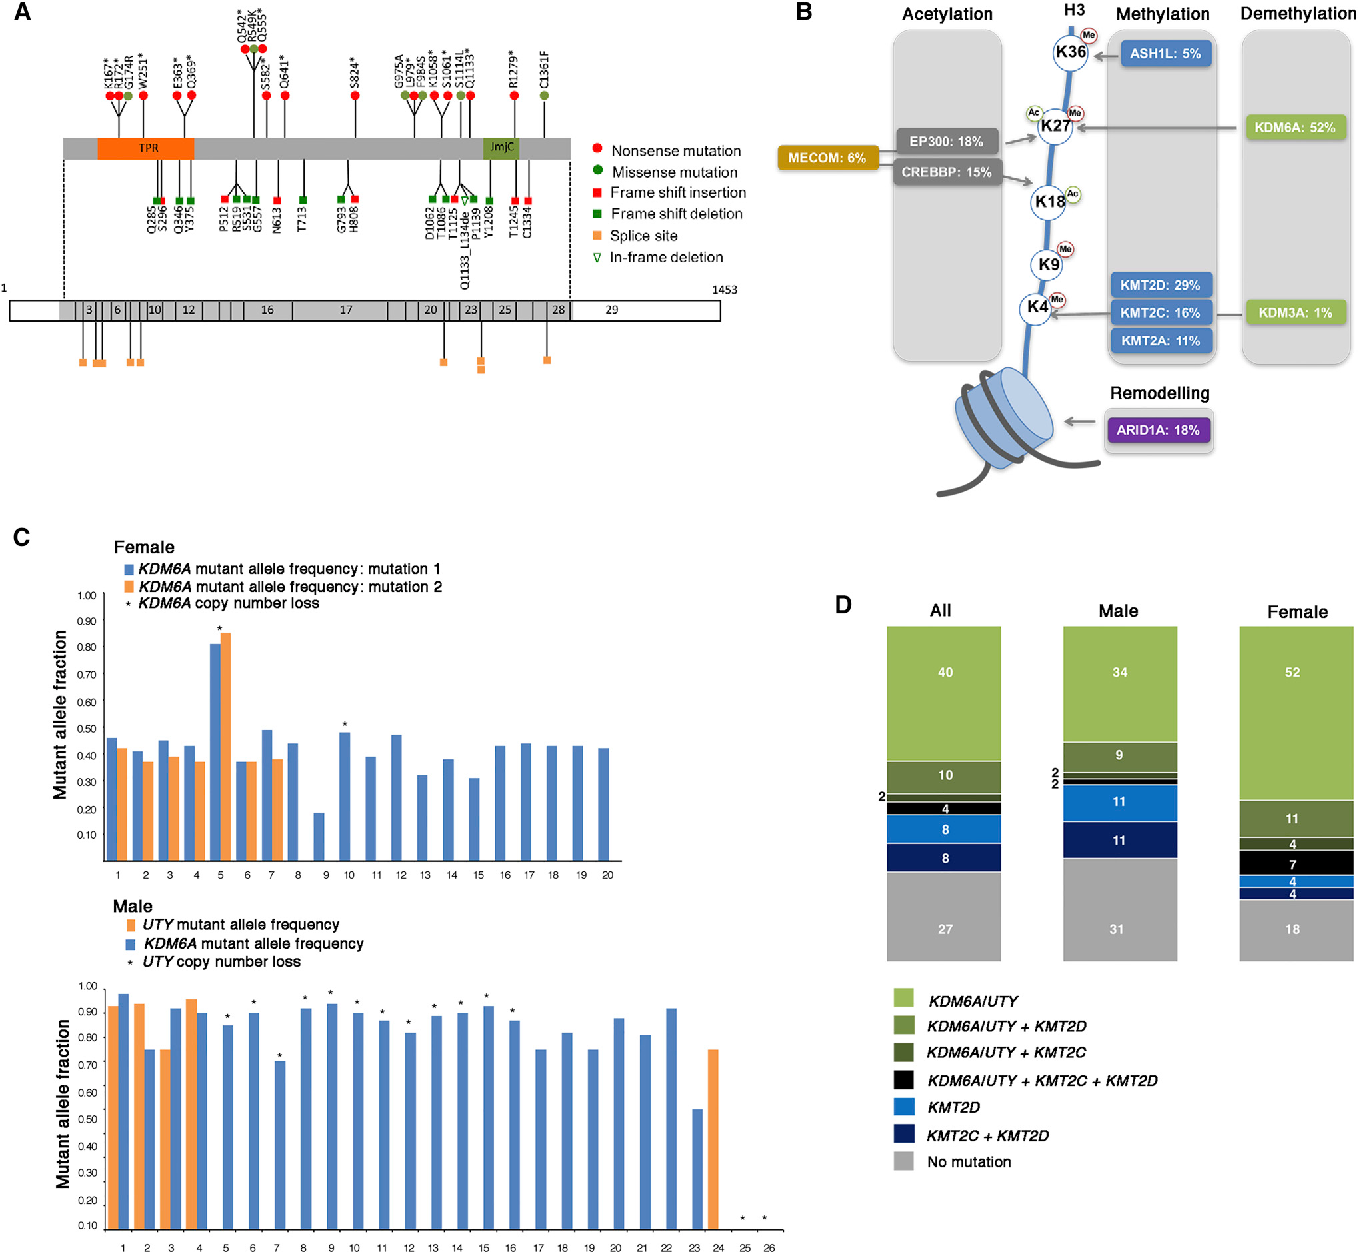 Figure 6. Mutation of Chromatin Modifier Genes and Relationship to Gender